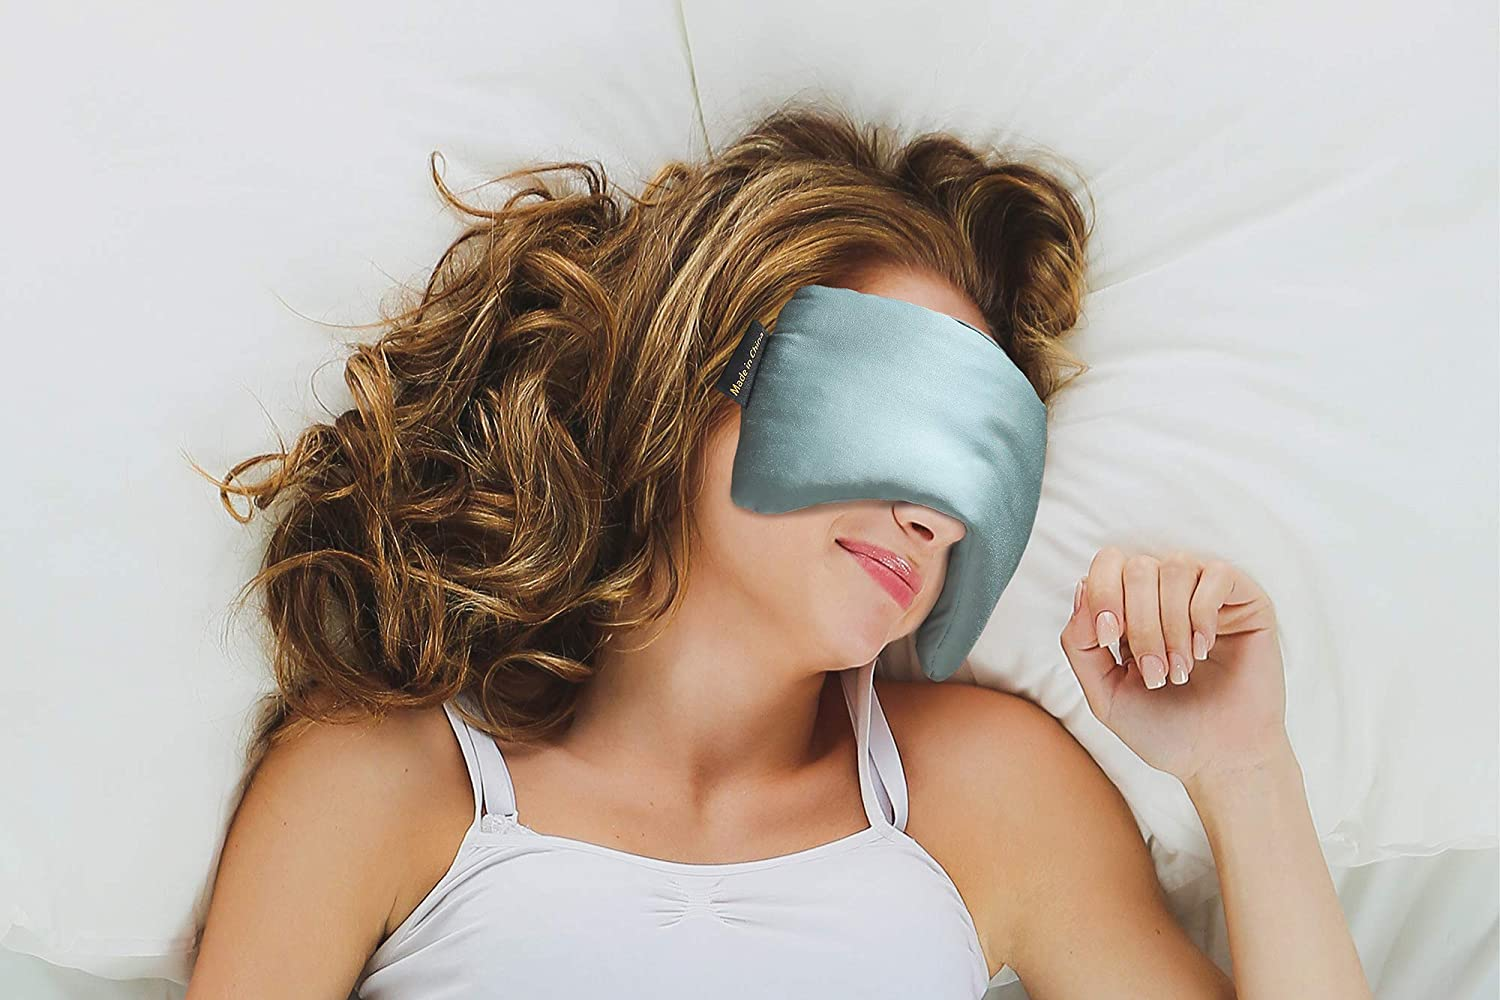 YnM Premium Weighted Sleep Mask with 100% Bamboo Viscose & Premium Glass Beads, Blackout Sleeping Mask, Sea Grass